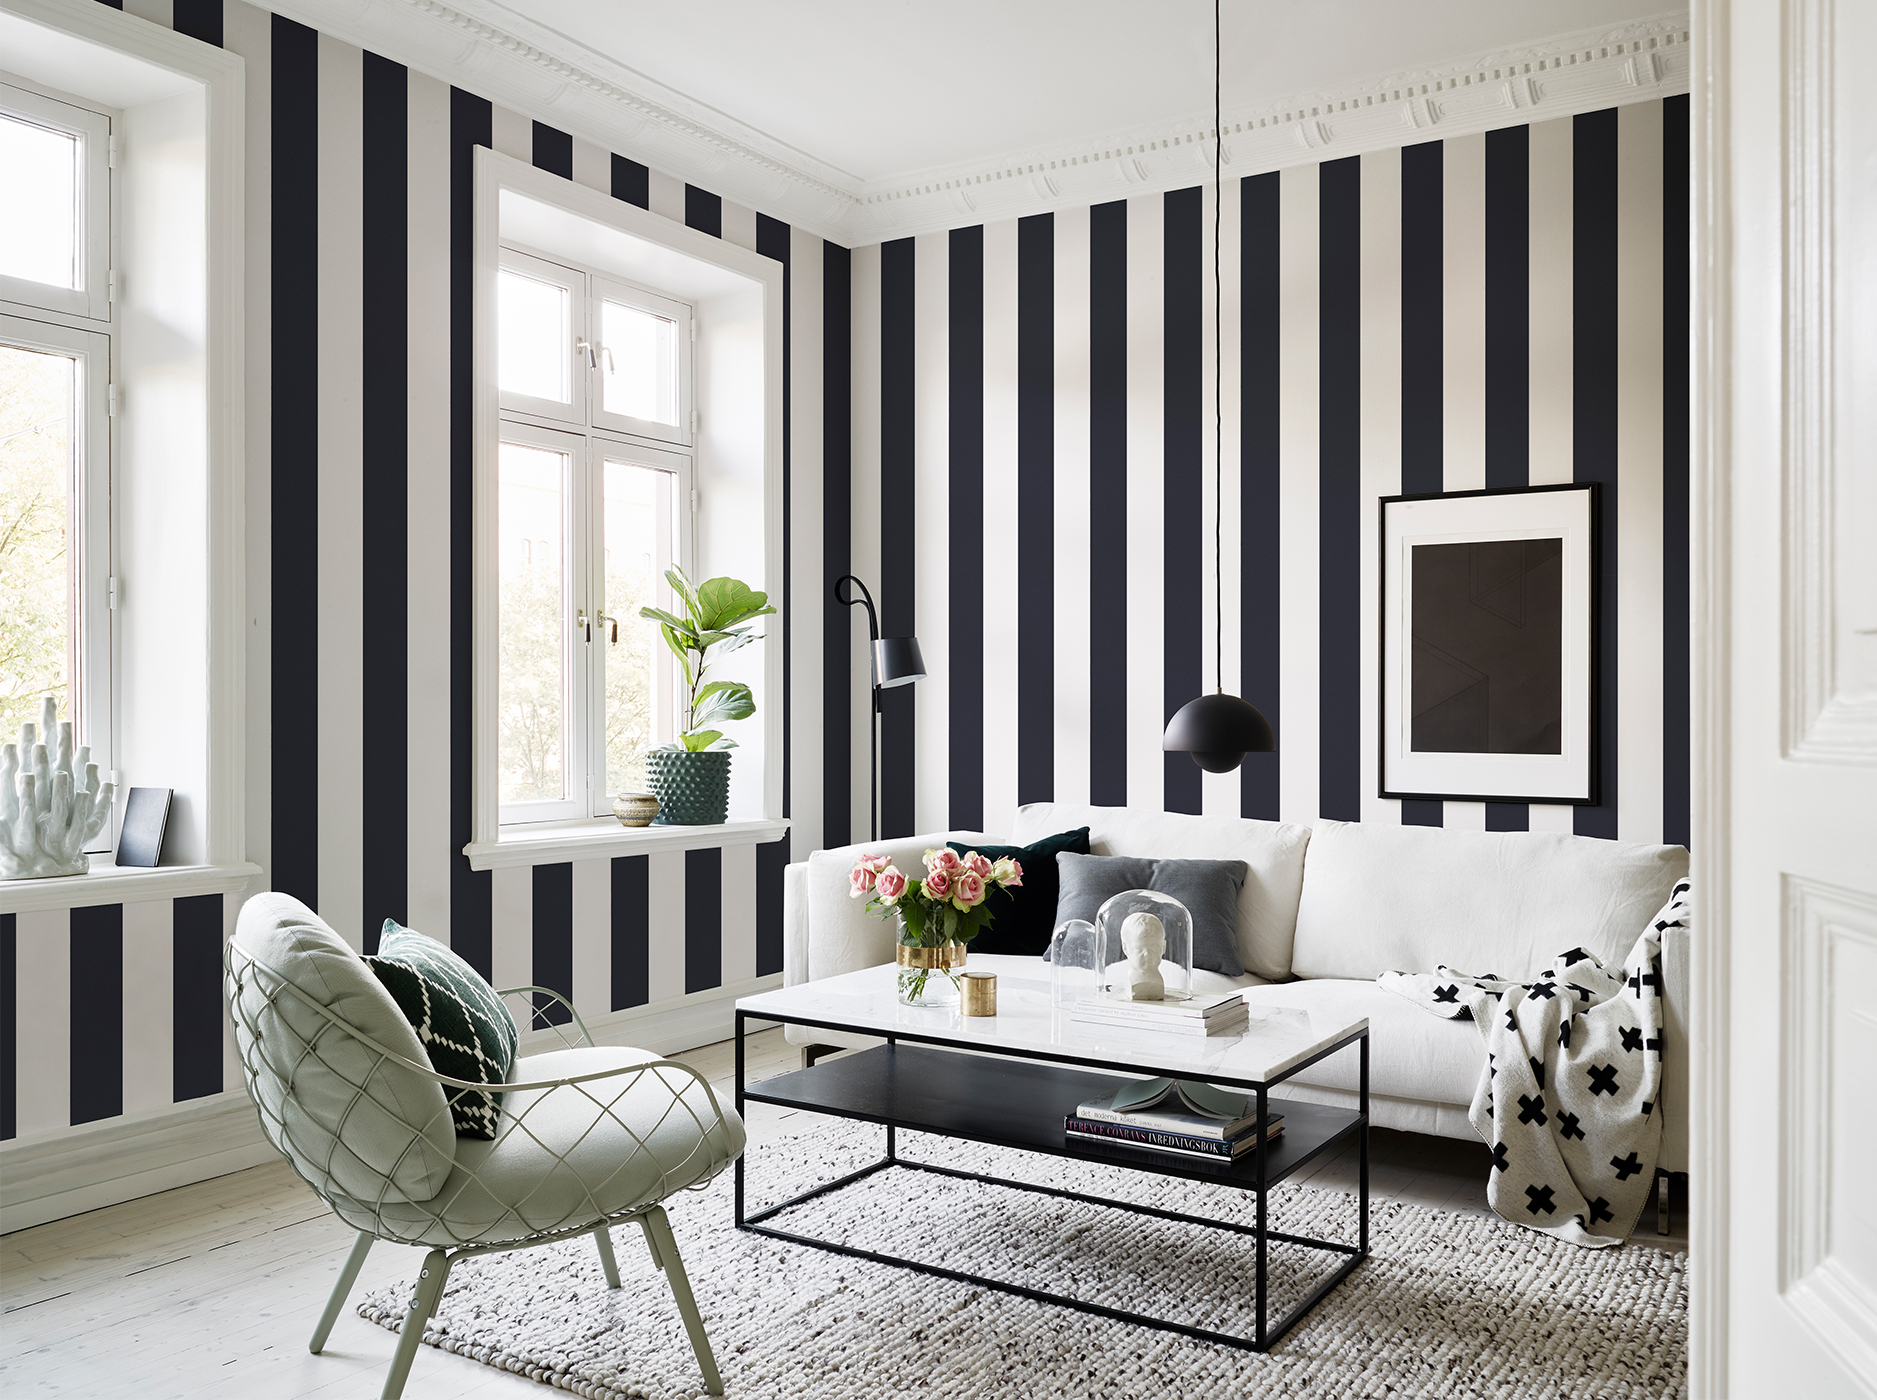 10 striped wallpaper design ideas - Wallpaper Design Ideas